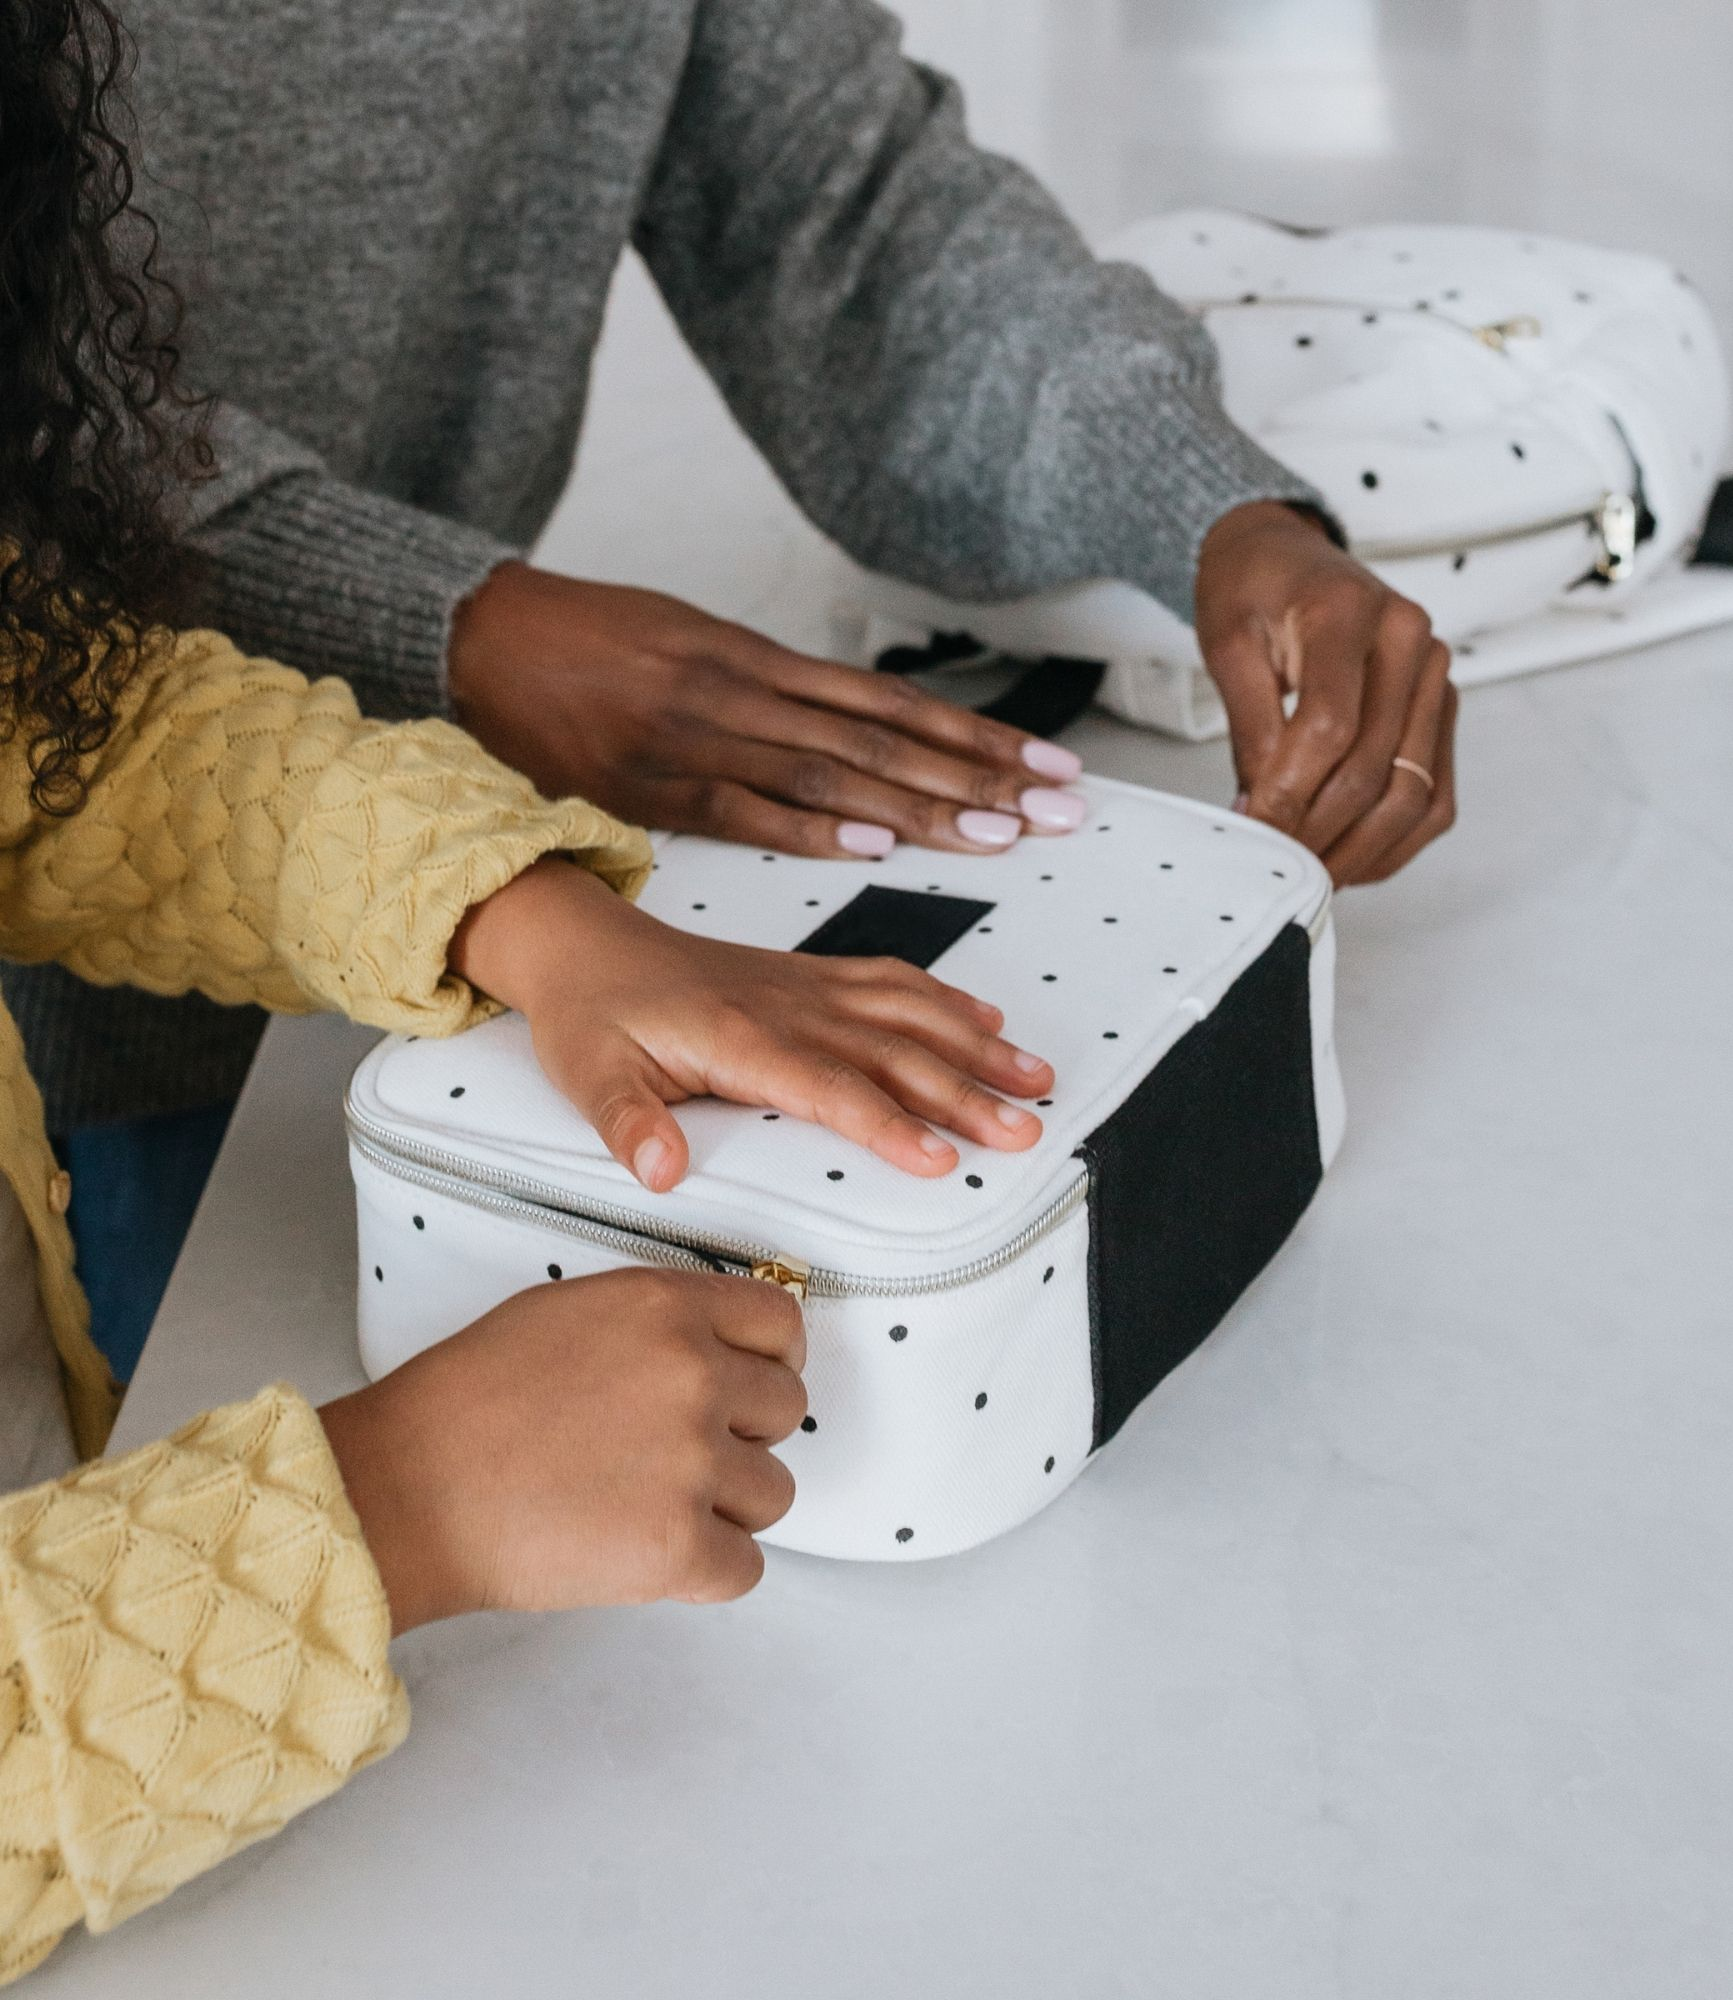 a child and her mother packing up the child's white polka dot lunchbox